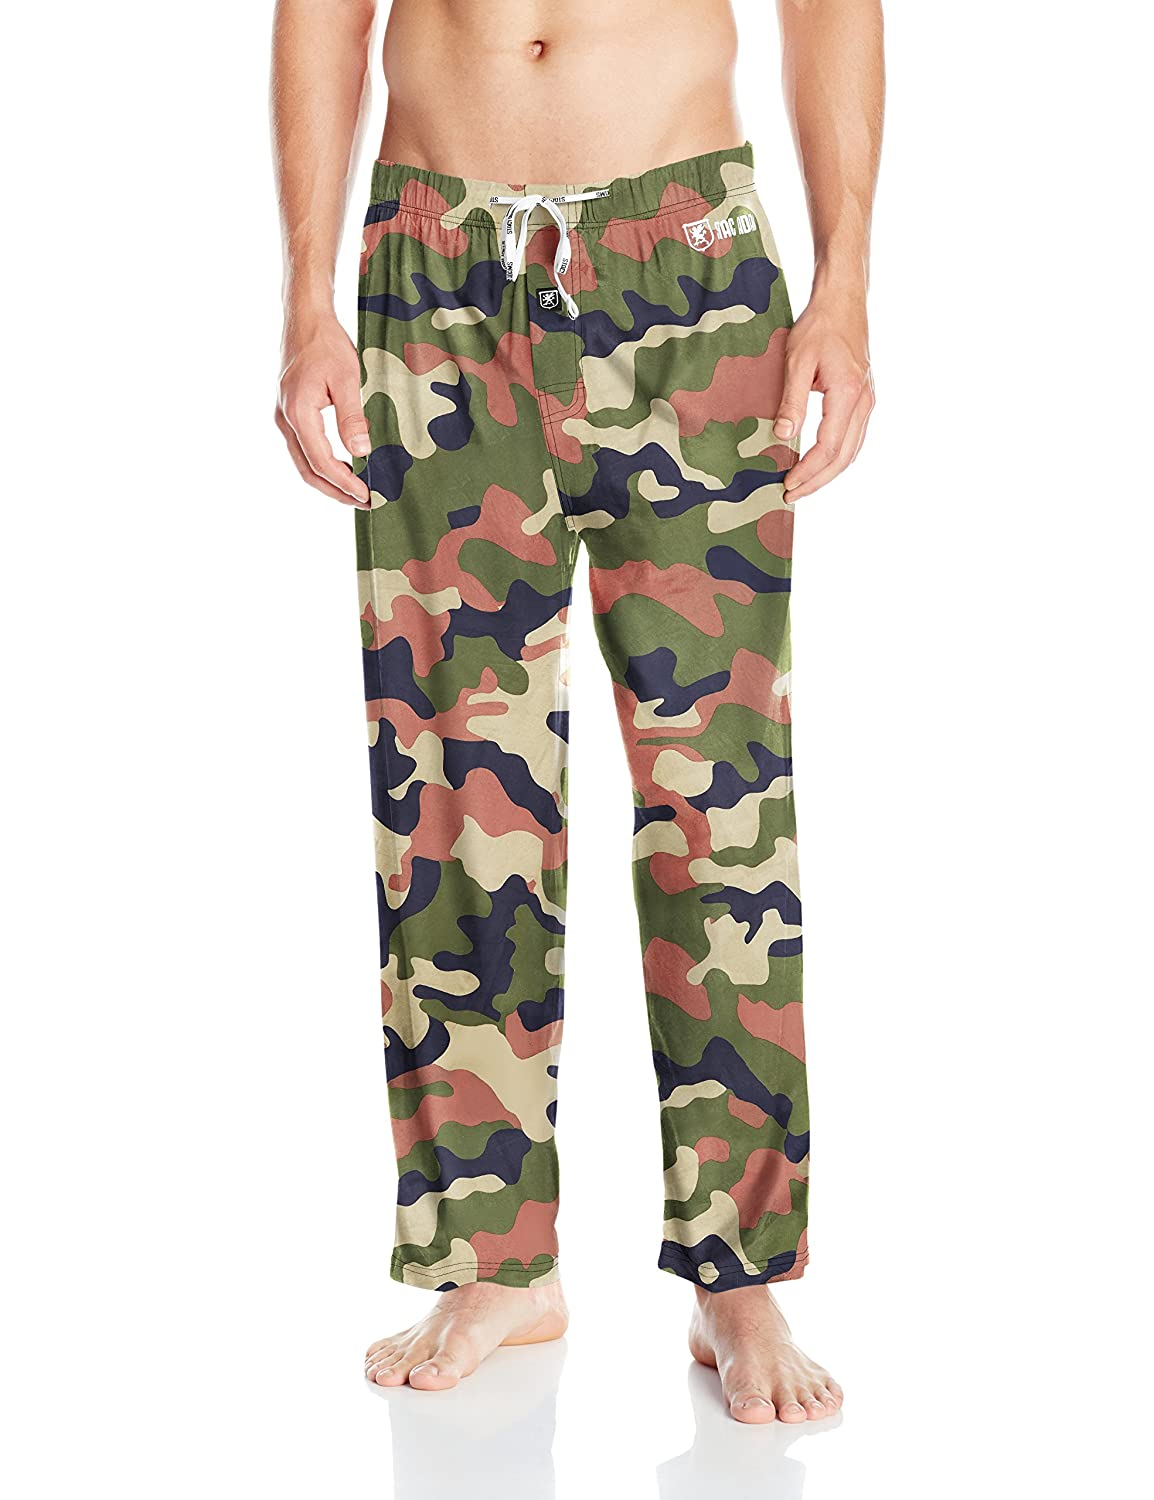 Stacy Adams Hombres Stacy Adams Mens Regular Sleep Pant Camo parte inferior de pijama : Amazon.es: Ropa y accesorios